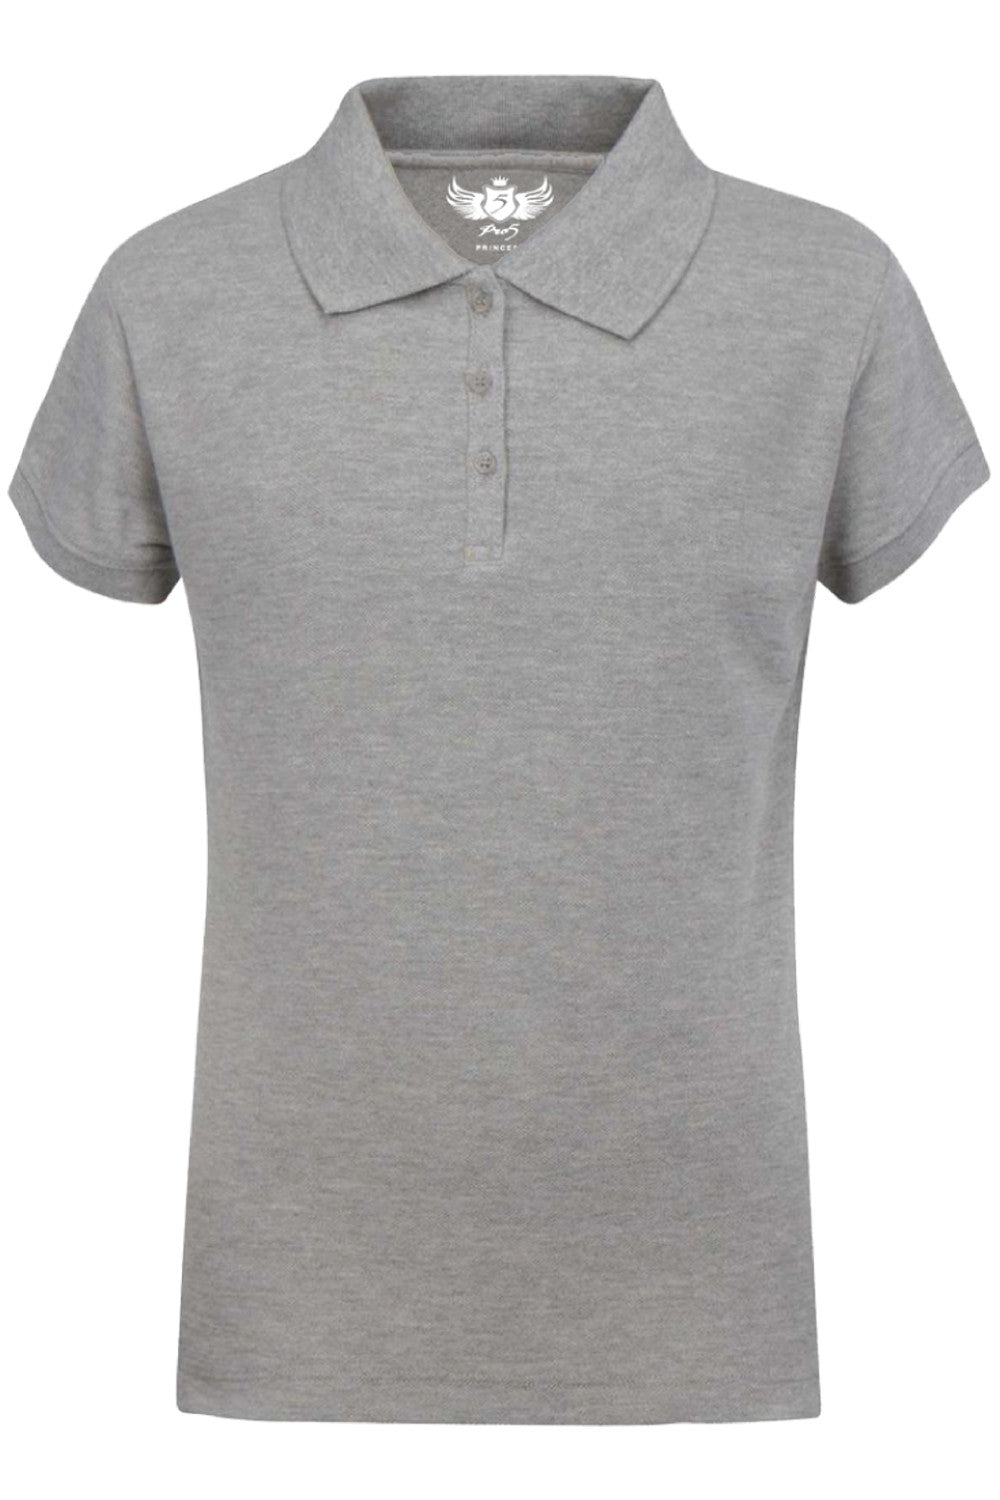 Girls Polo Top Kids School Uniform Heather Grey